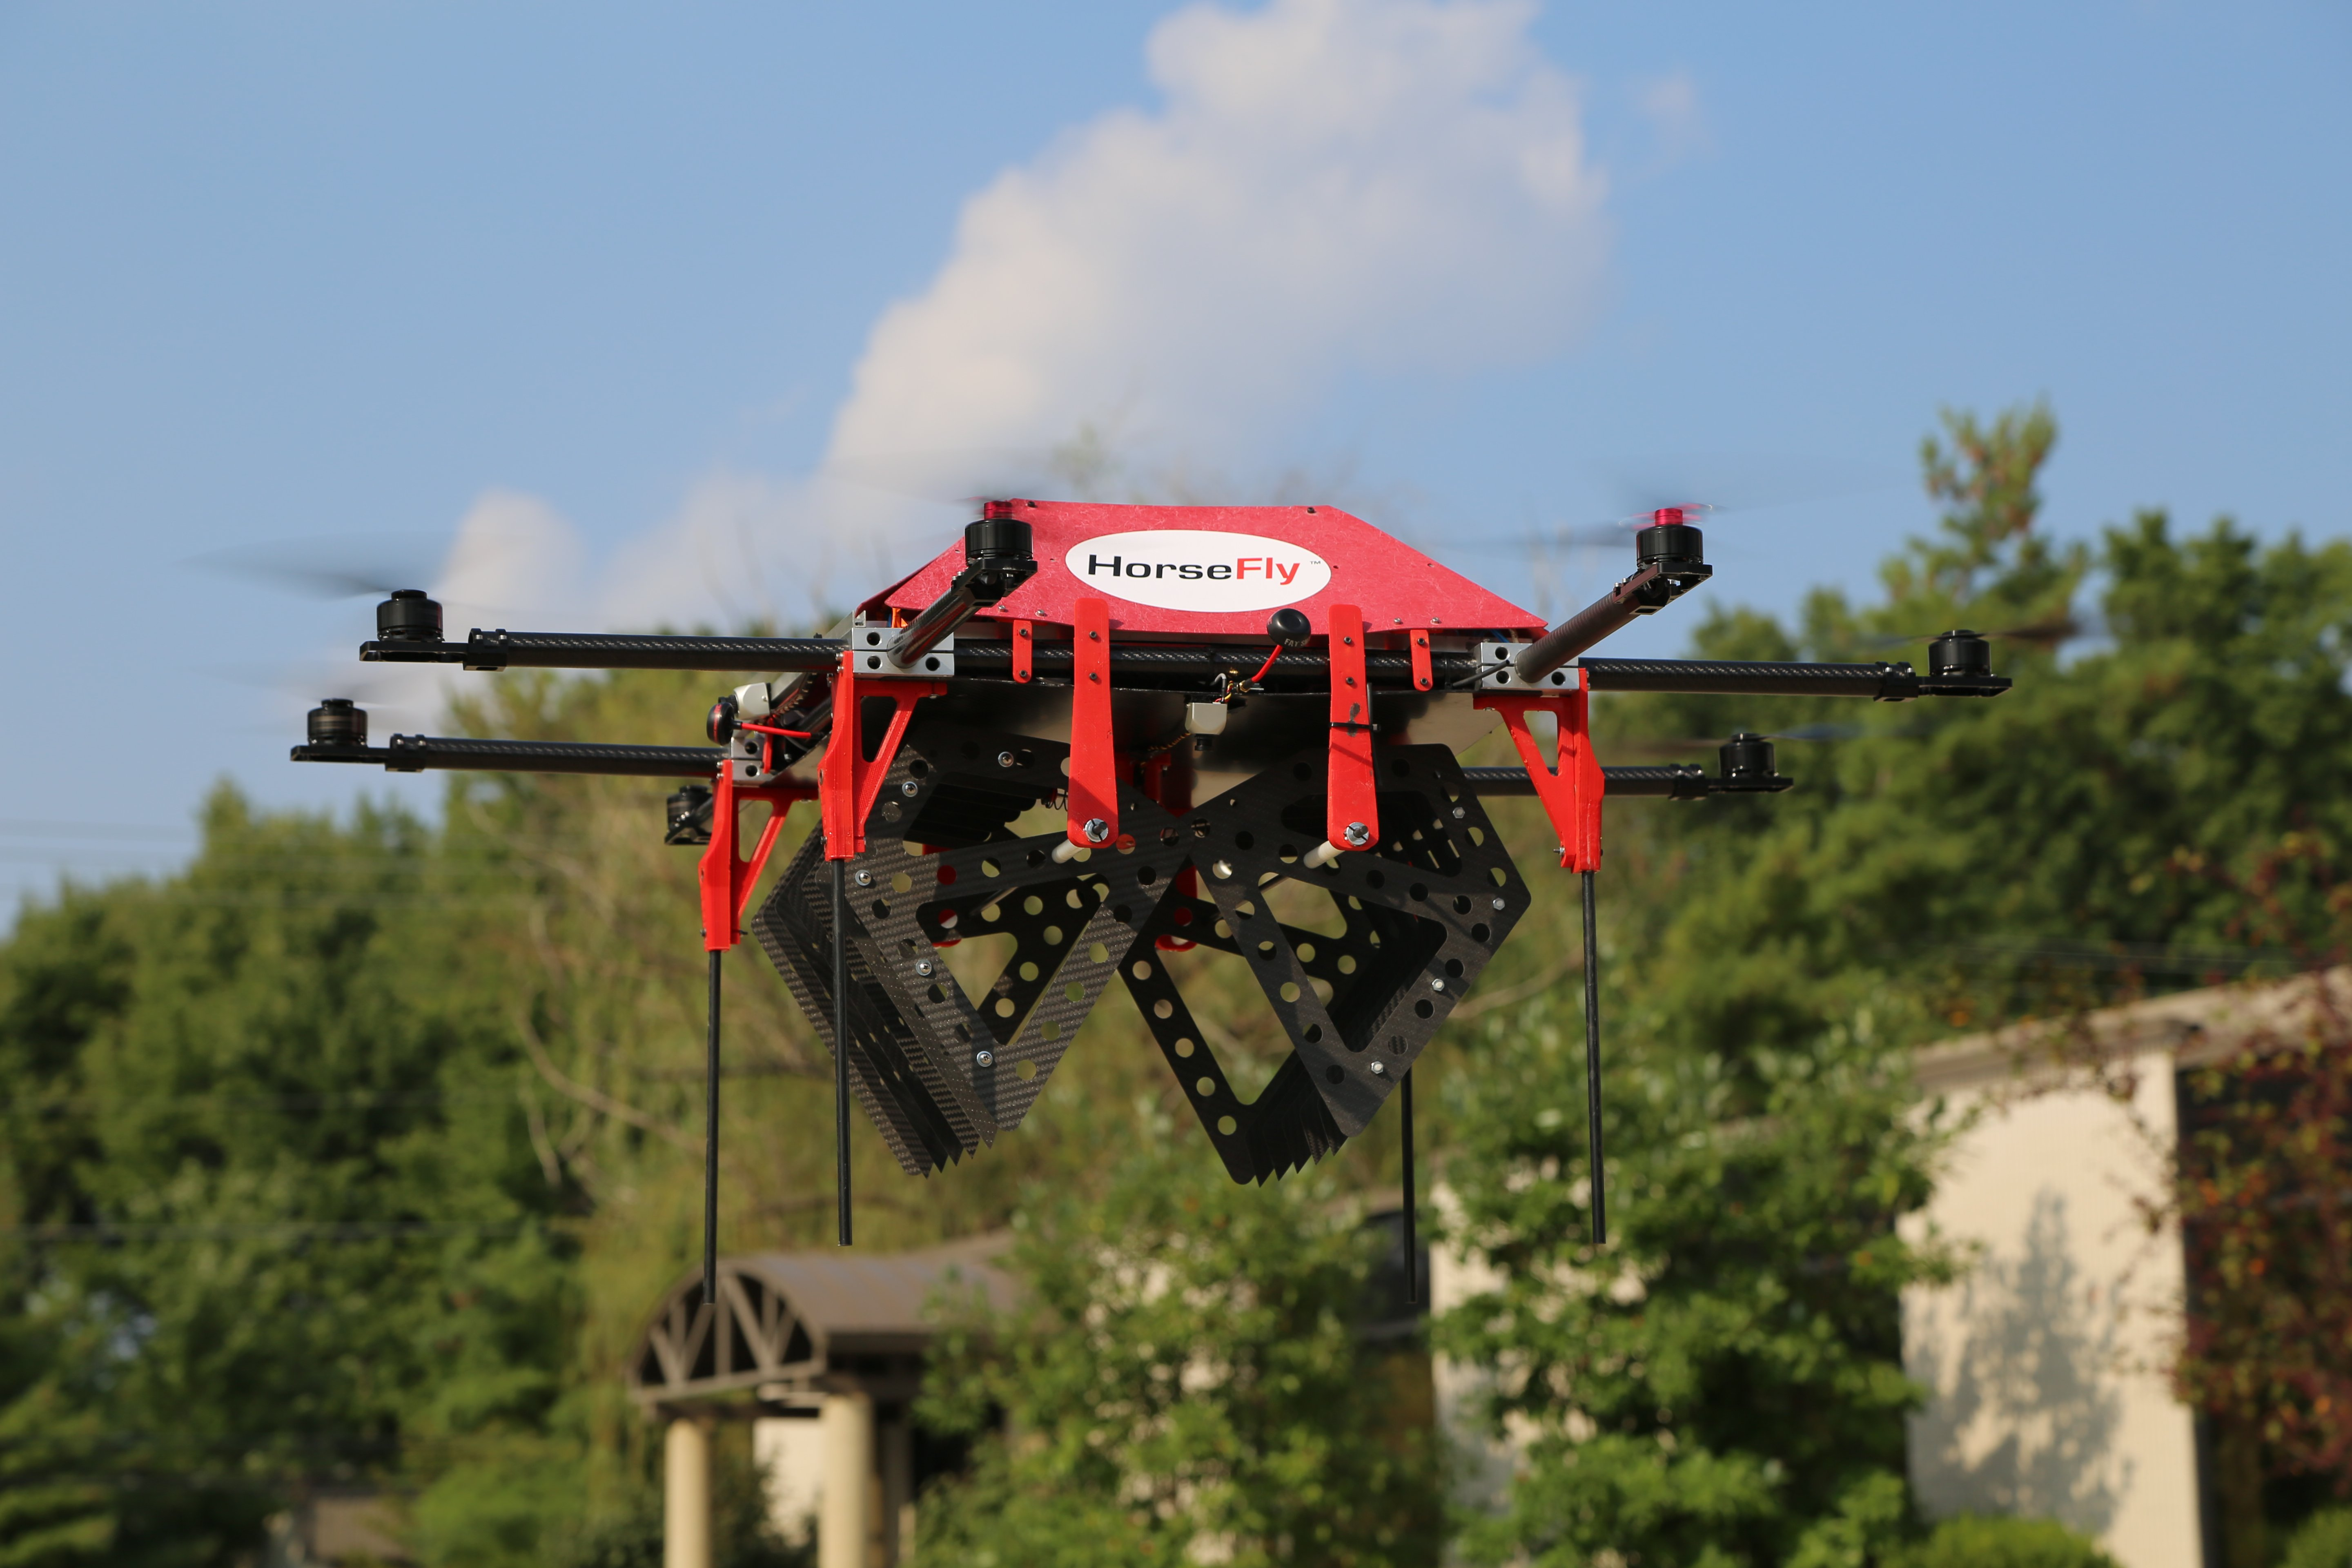 Electric Truck Maker Developing Drone Deployment System